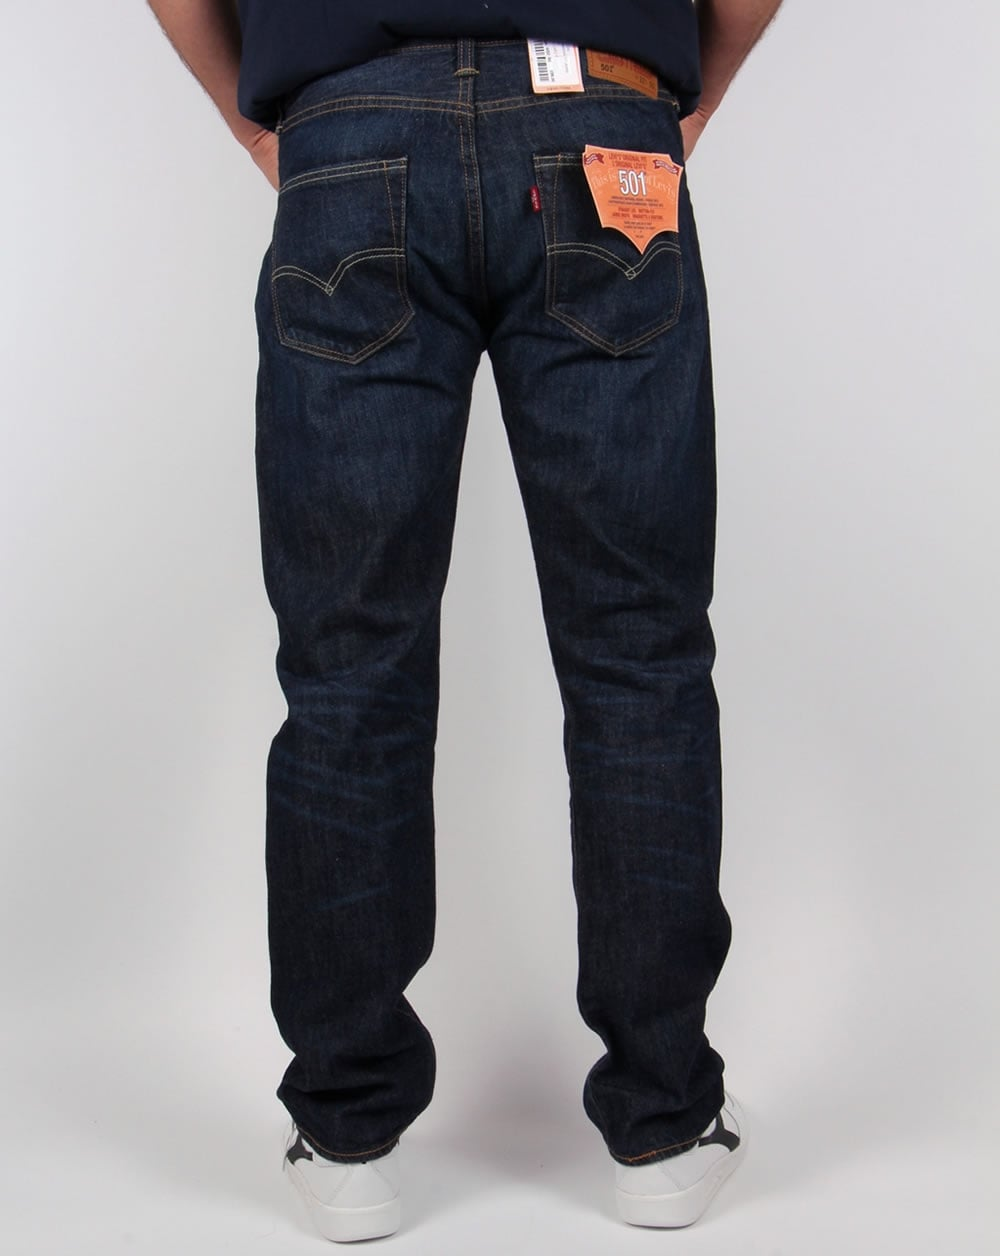 833a17757bb Levis 501 Original Fit Jeans Just Lived In,denim,mens,straight